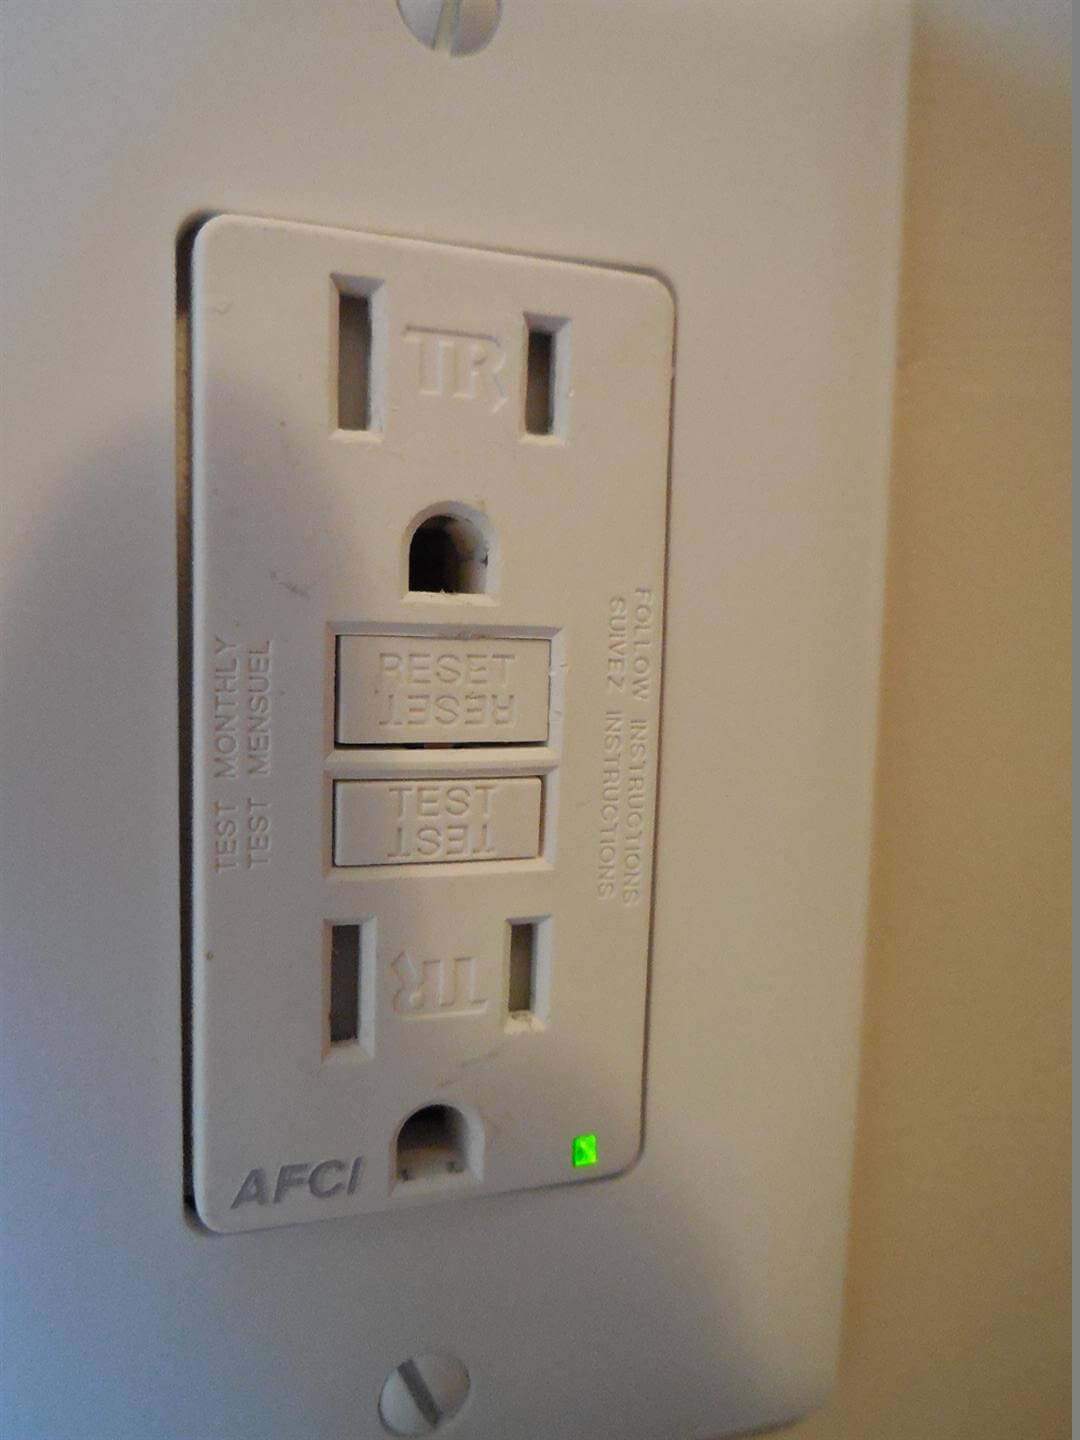 New Electrical Safety Requirement Afci Protection For Replacement Old Time Fuse Box Outlets